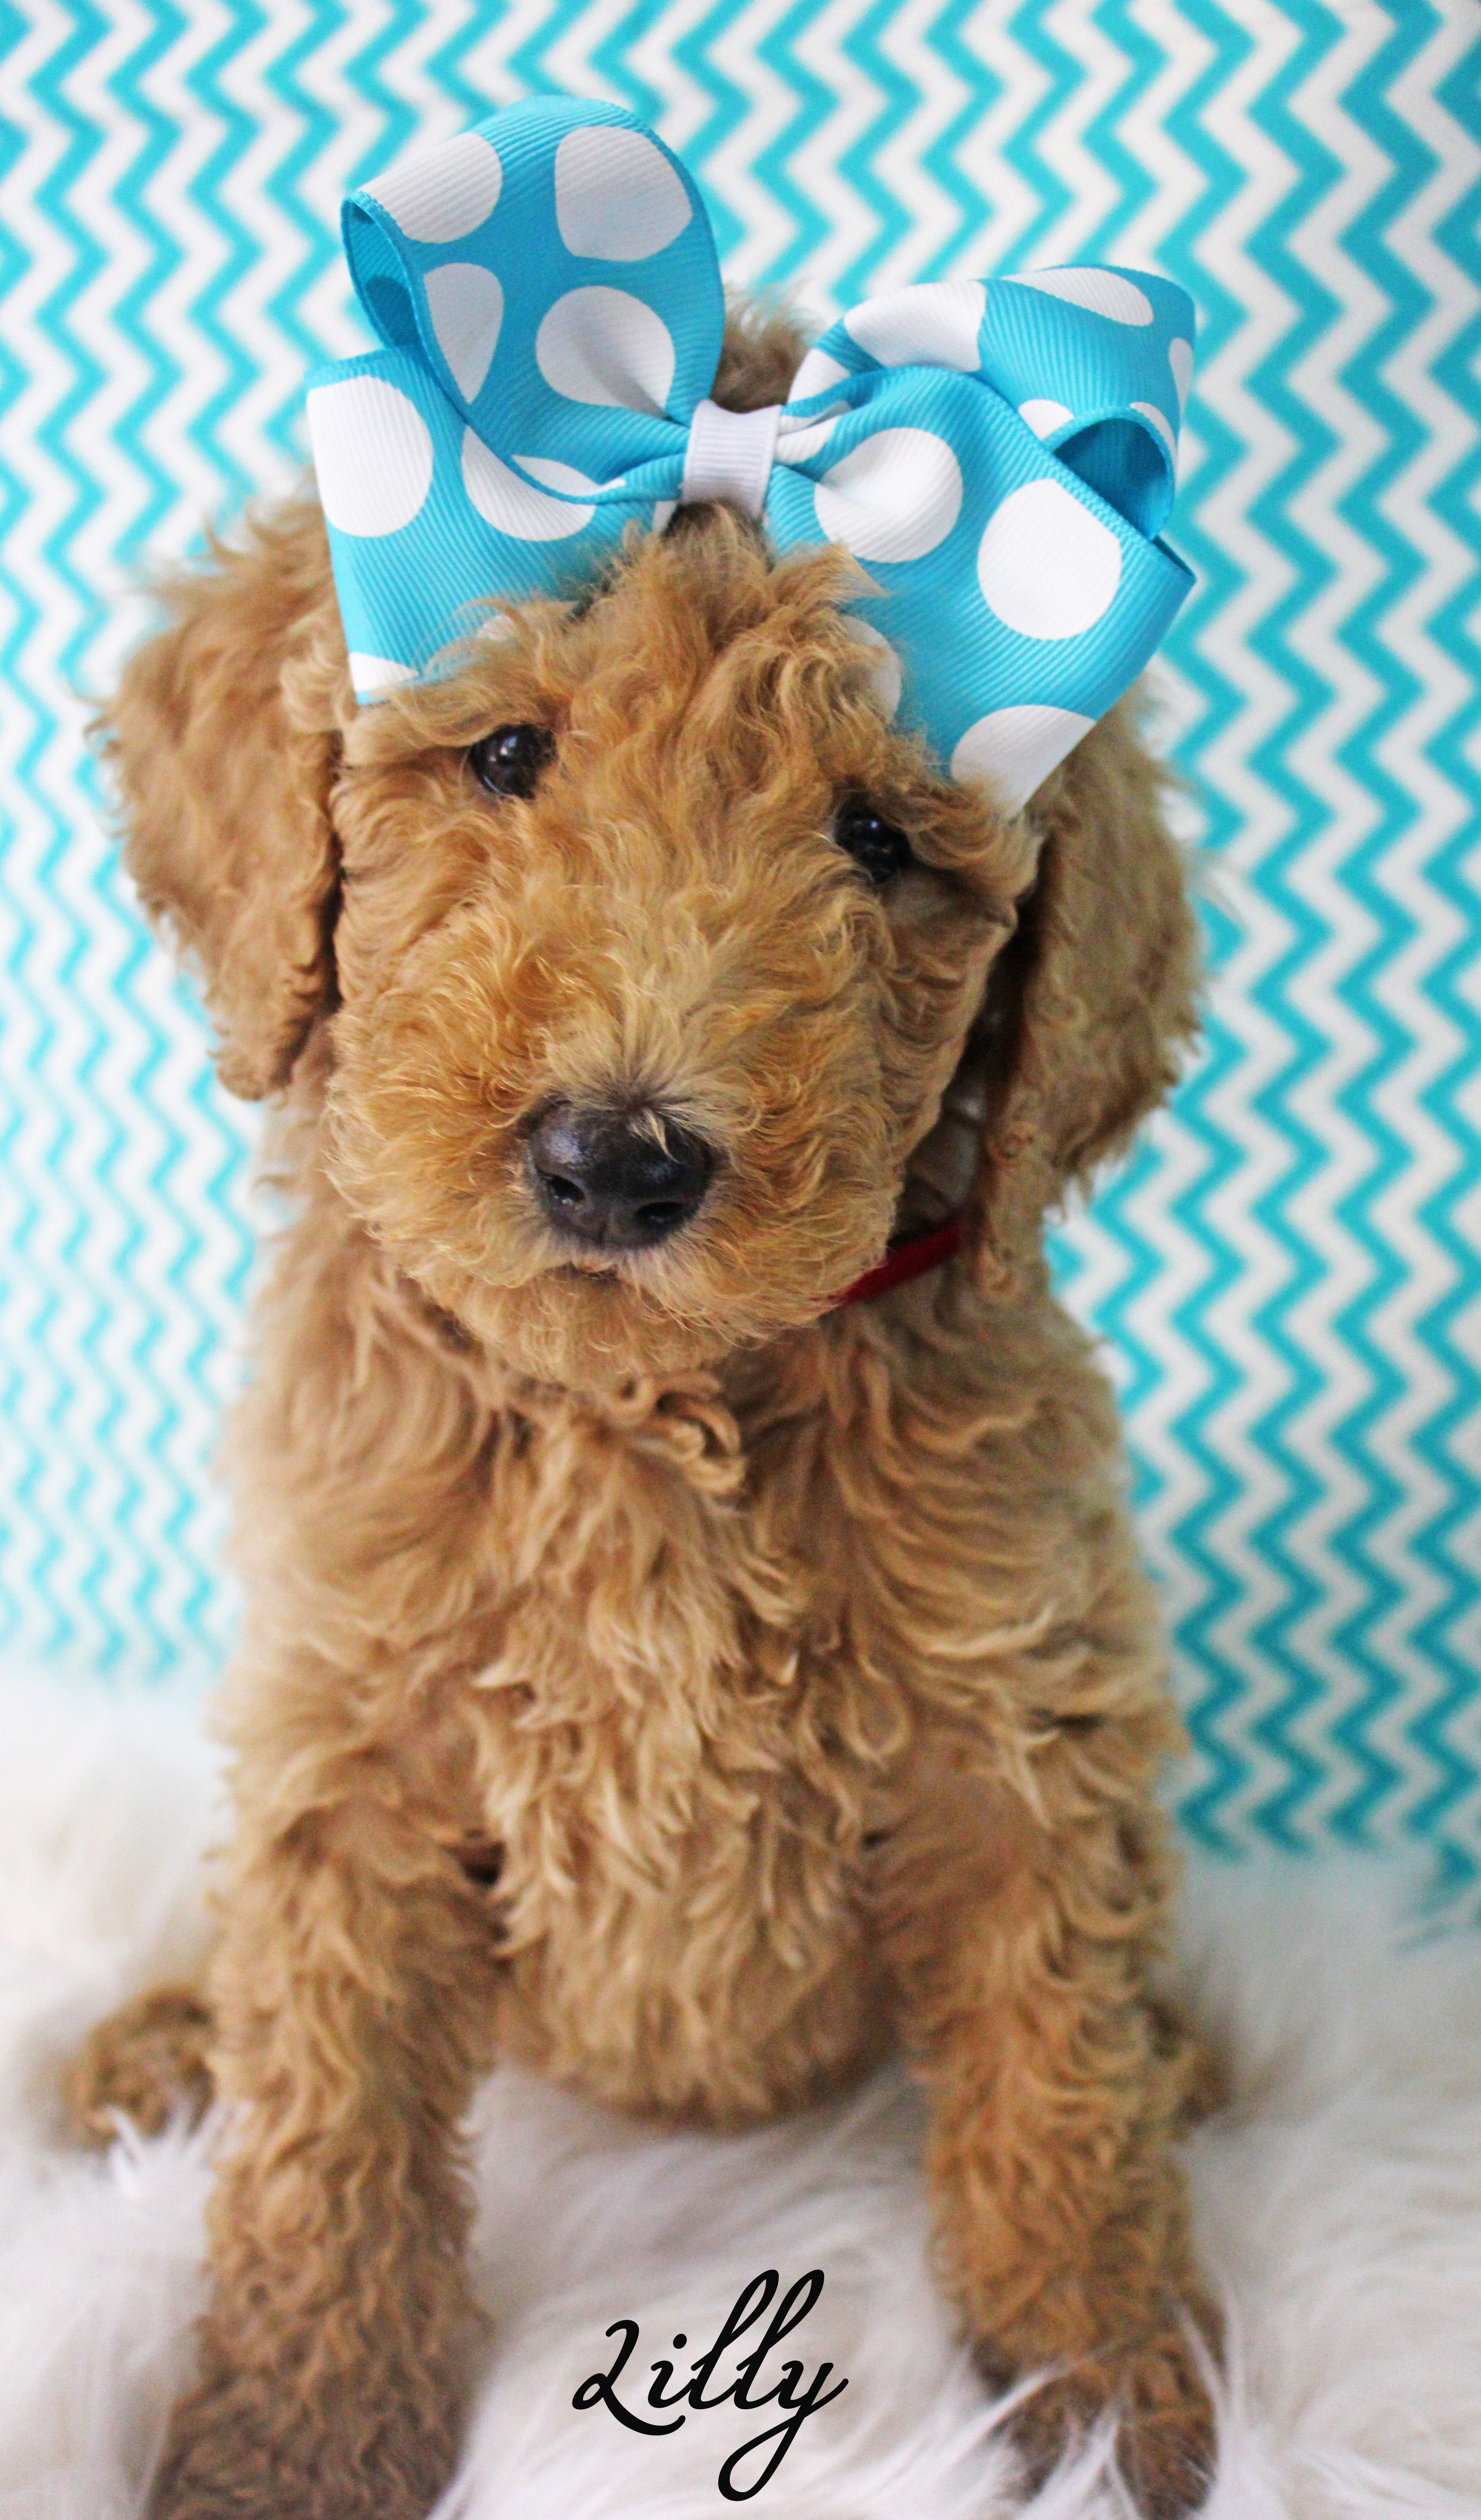 Apricot AKC 7 week old standard poodle puppy  Pet photography  Cute